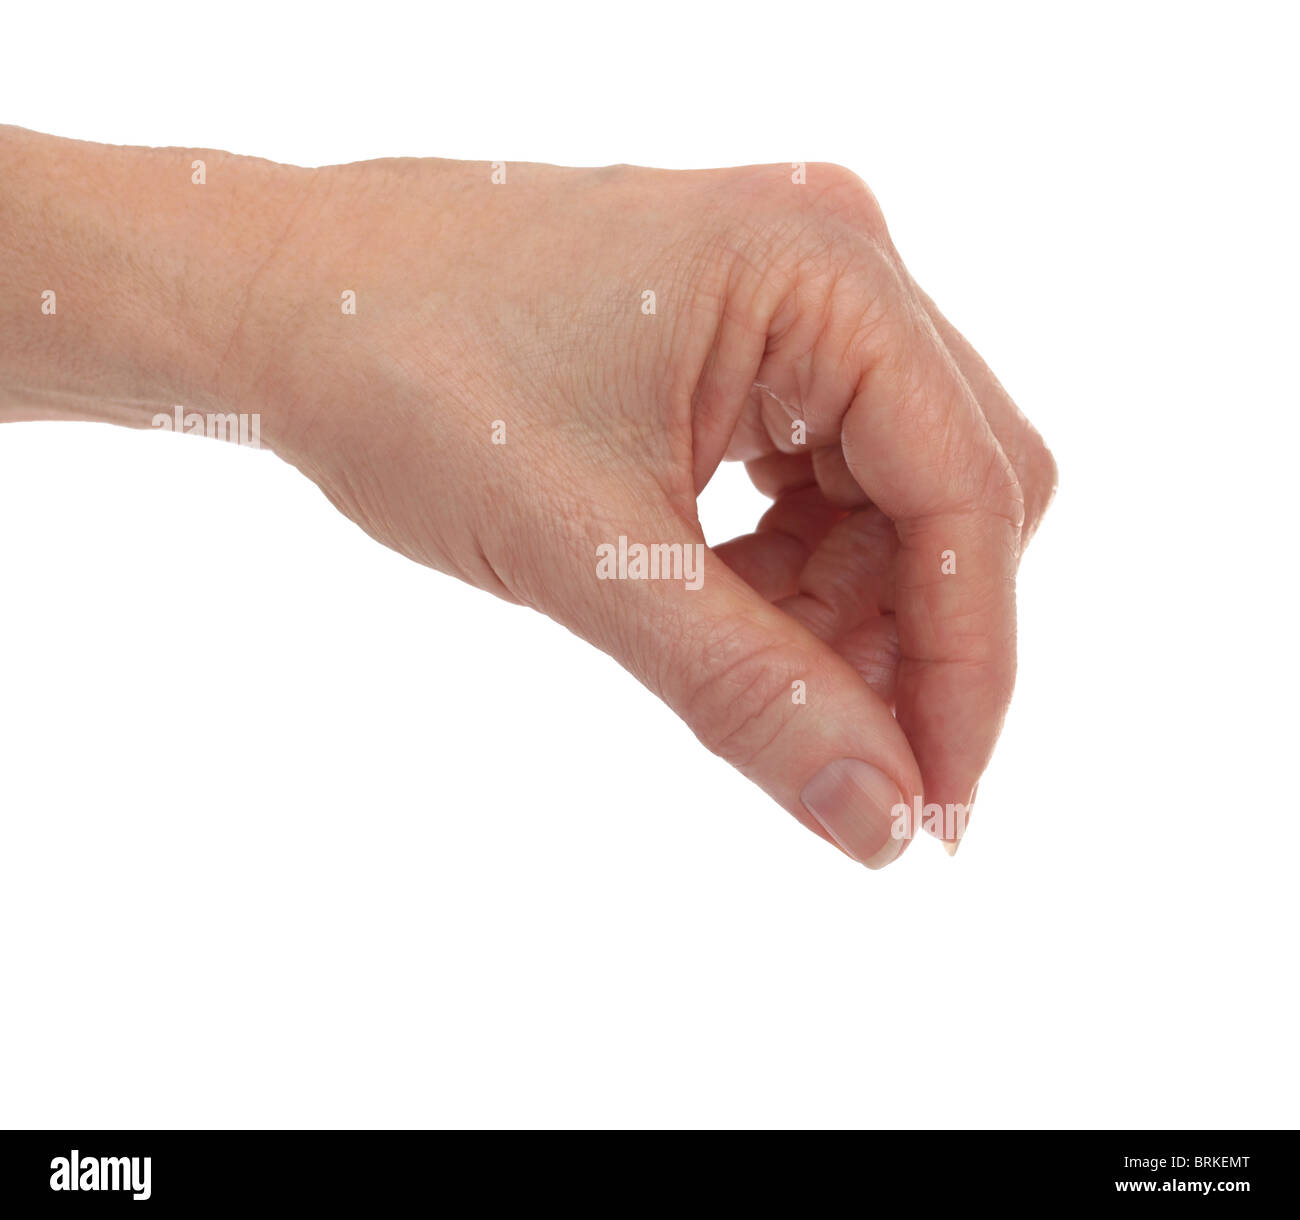 Hand Fingers Placing - Stock Image